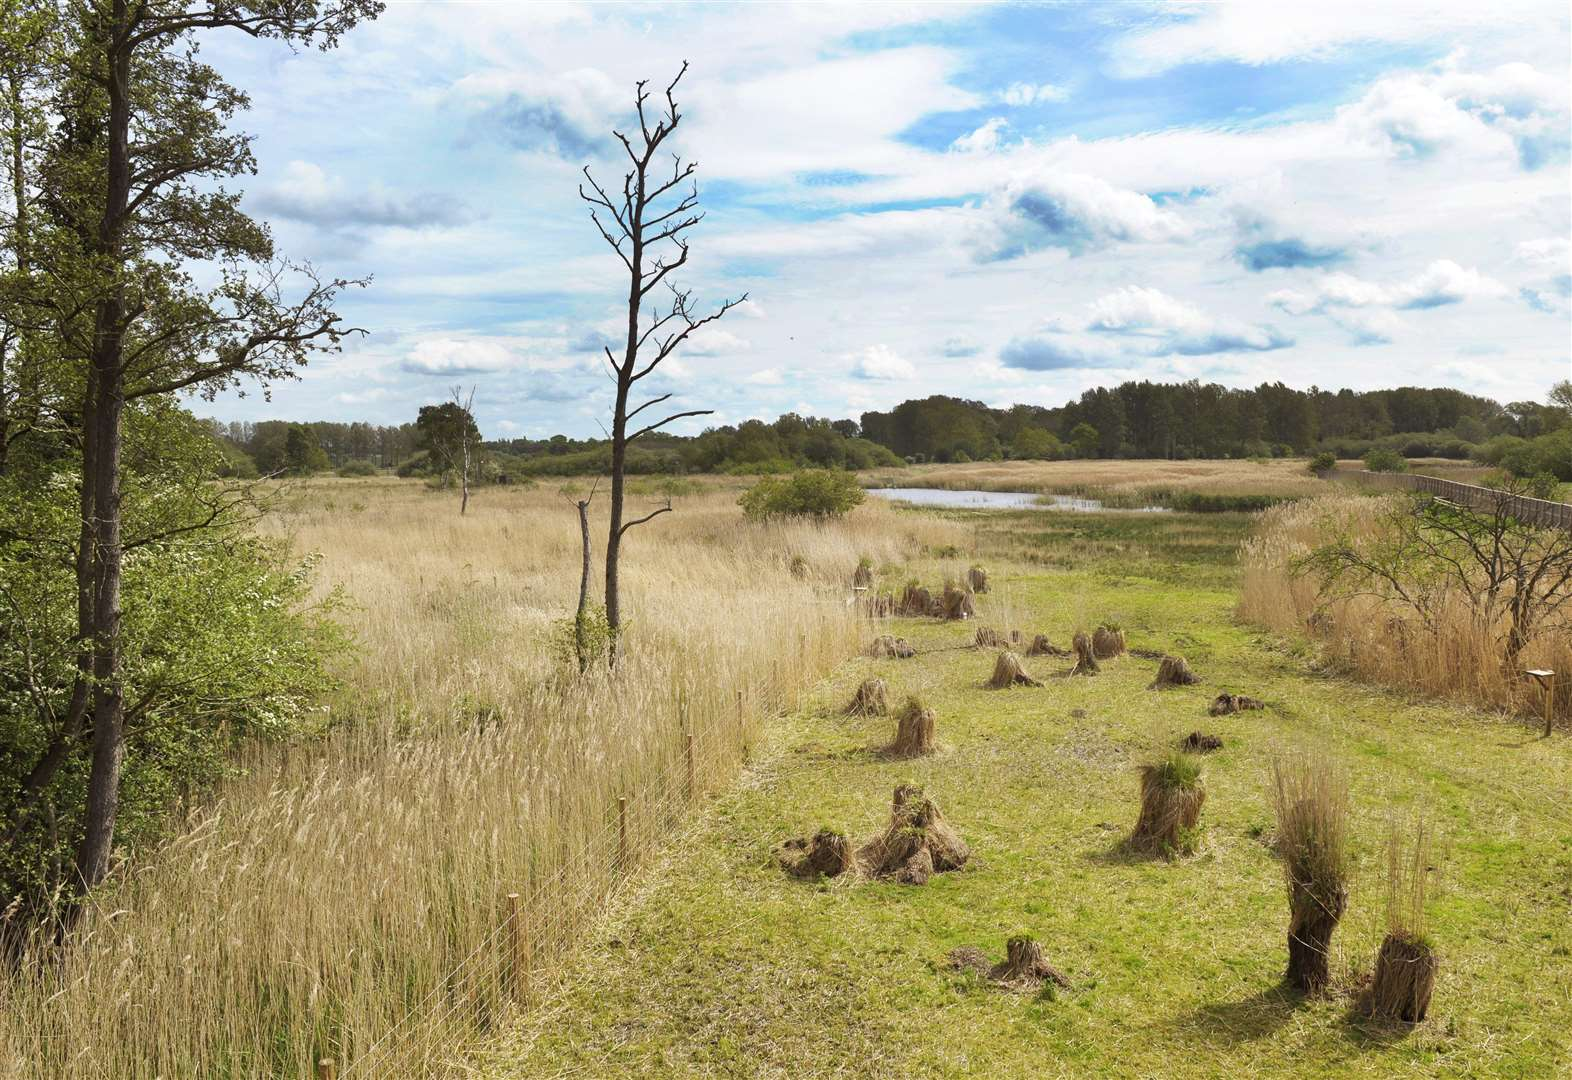 Sculthorpe nature reserve scoops £820k Heritage Lottery grant